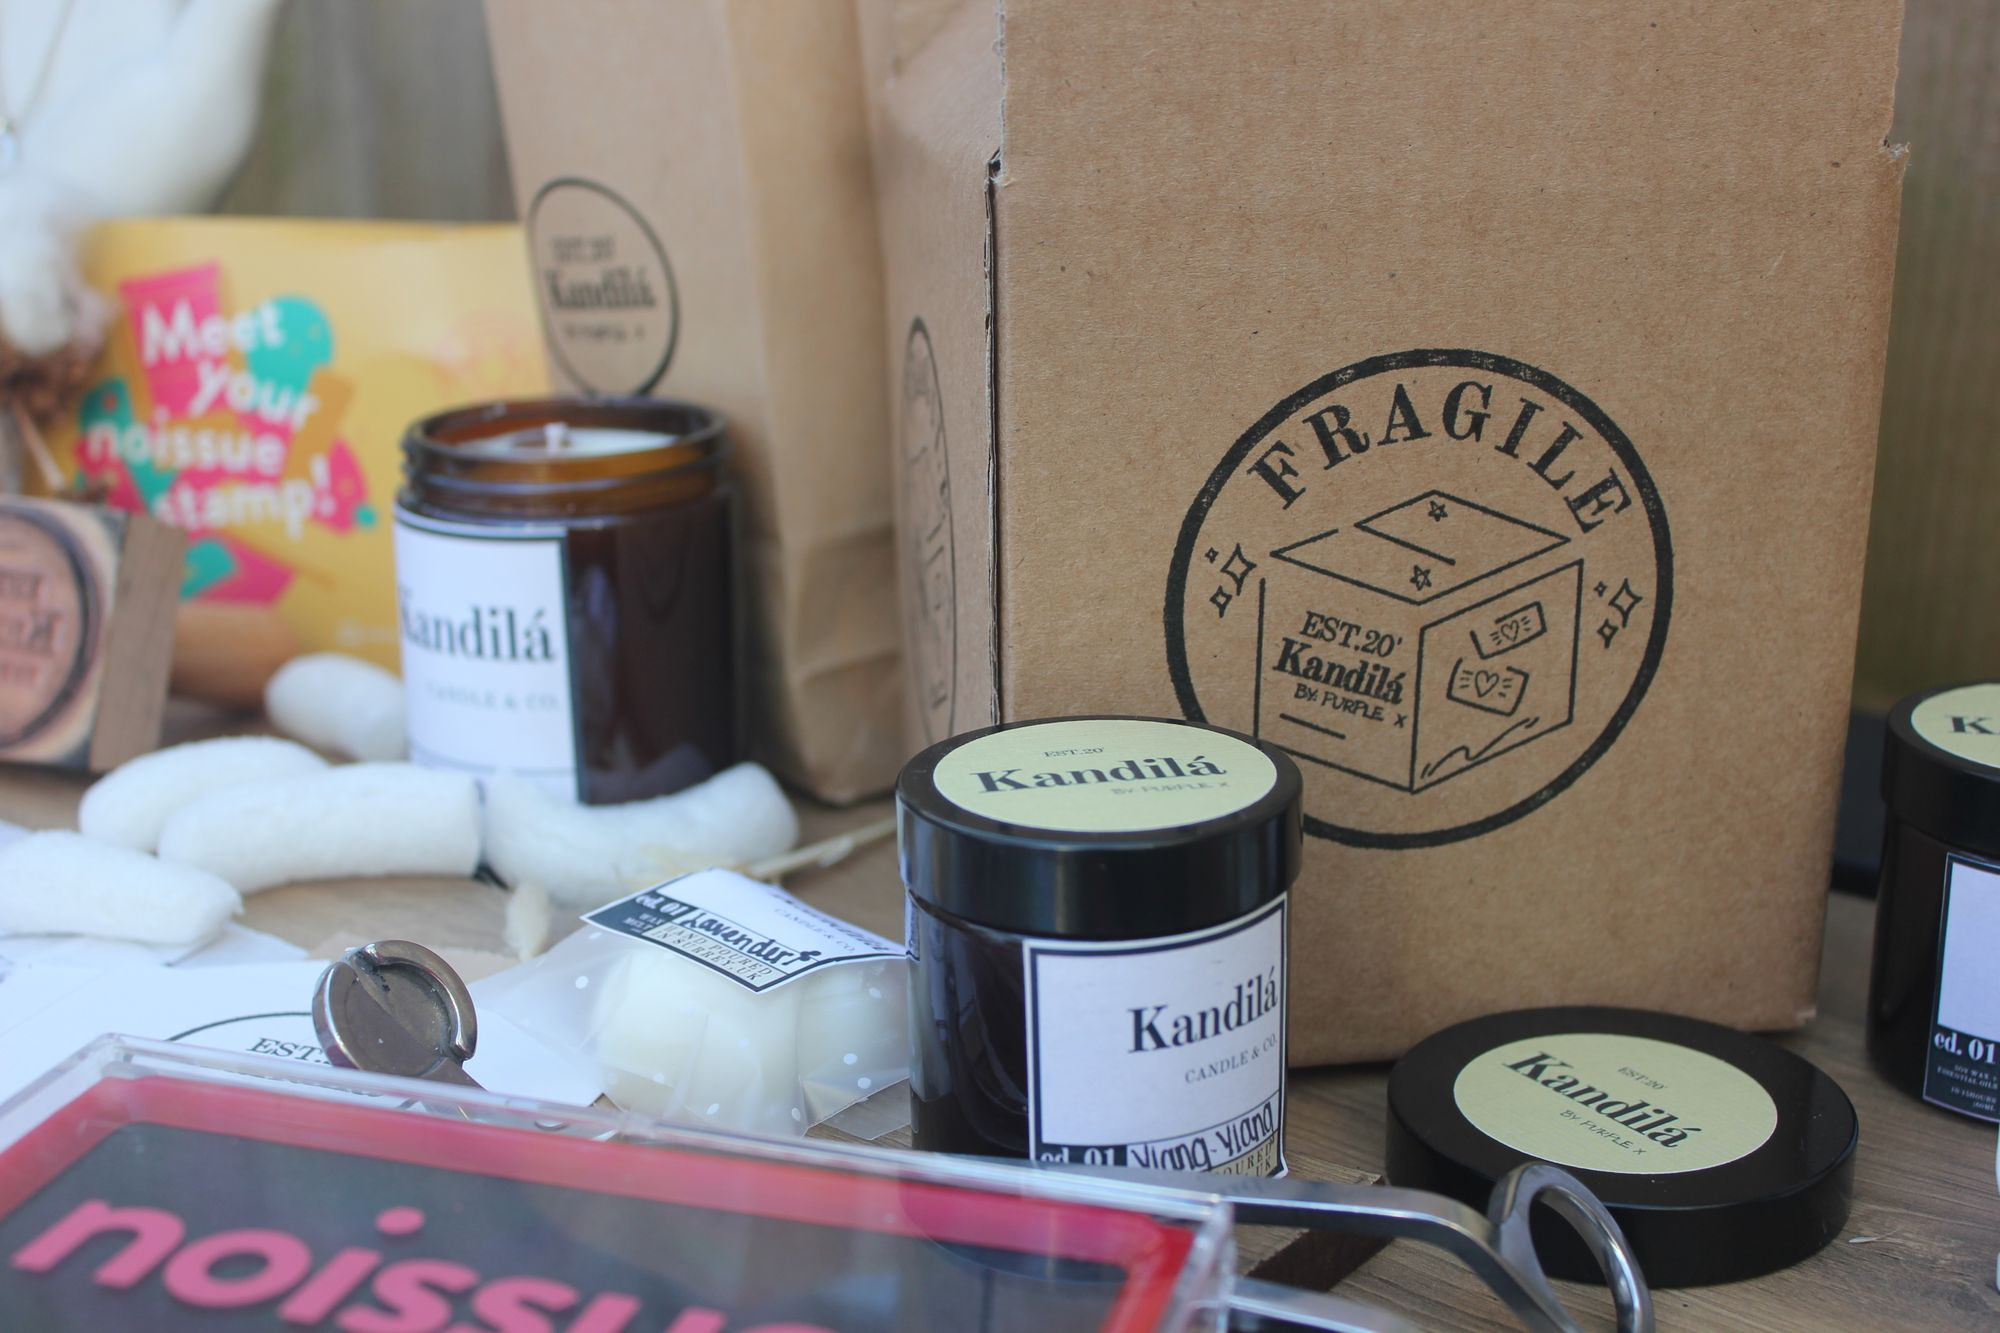 Kandilá Candle & Co: Resonating with Culture and Bringing Back Memories of Home